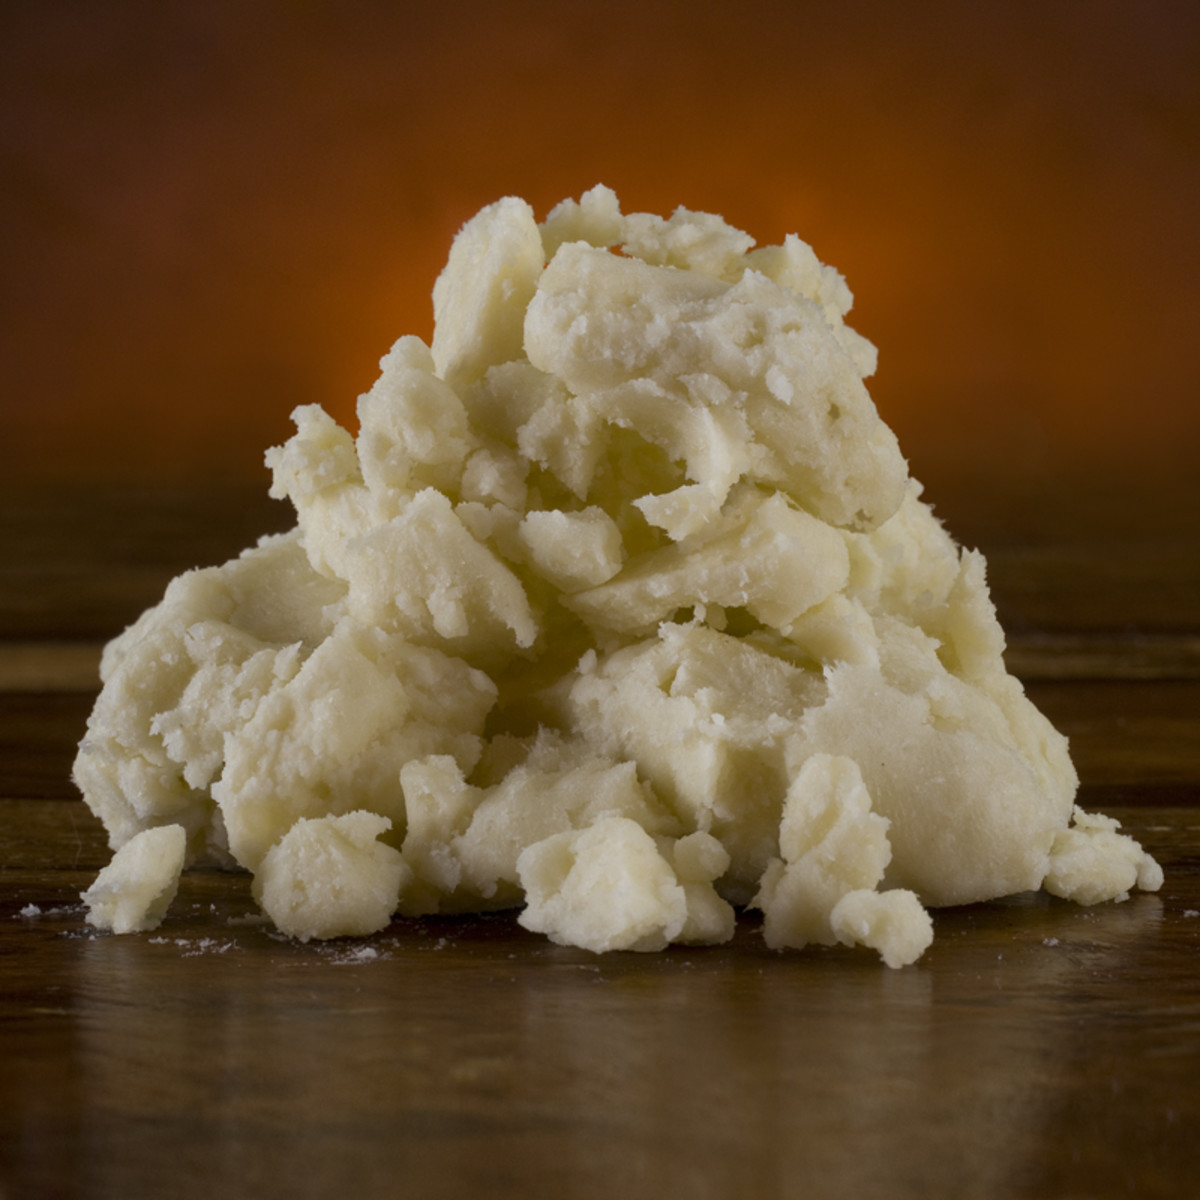 Shea Butter and it's Many Benefits